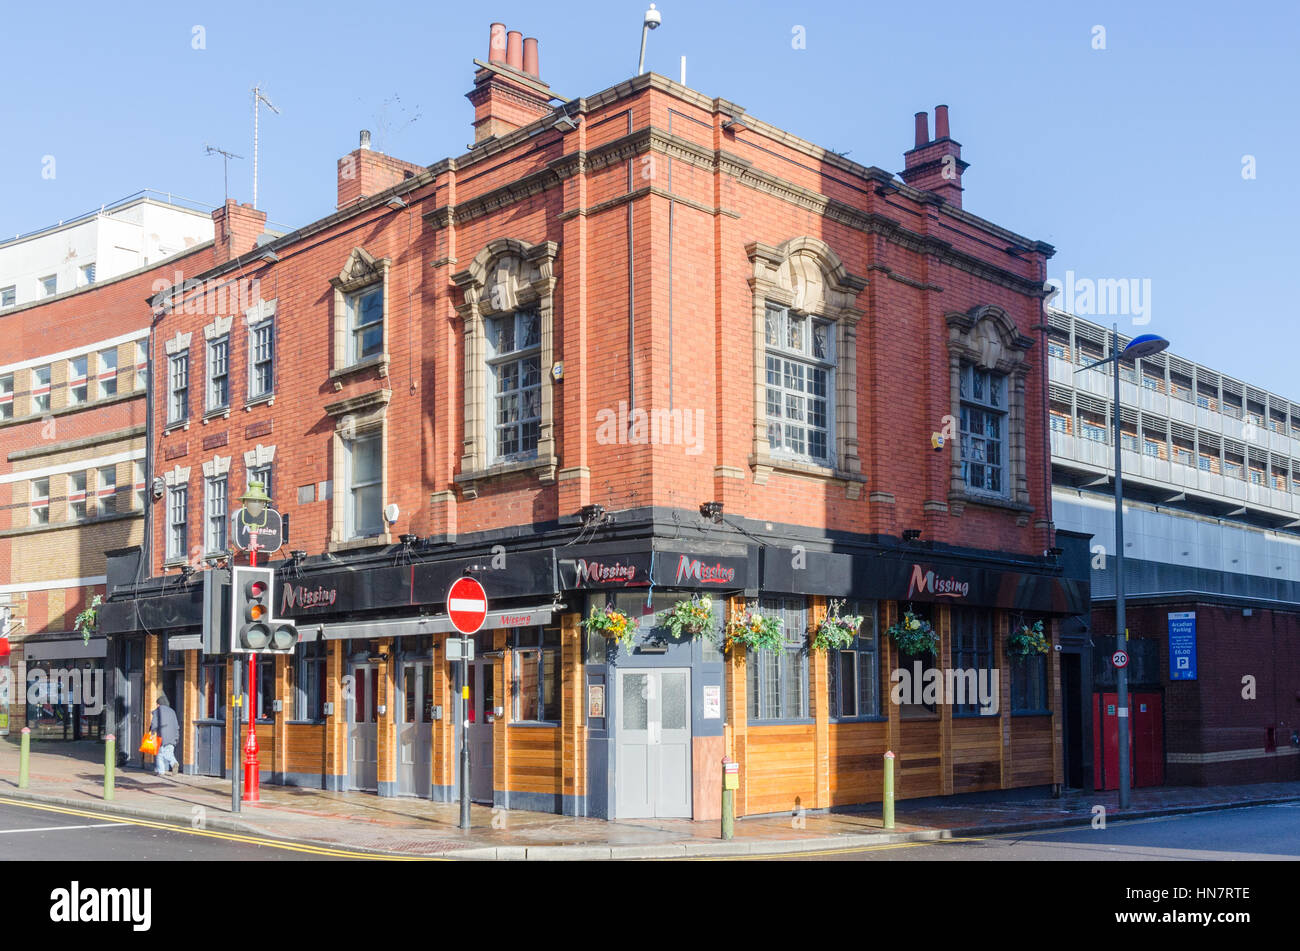 'Missing' bar and club in Birmingham's gay village - Stock Image